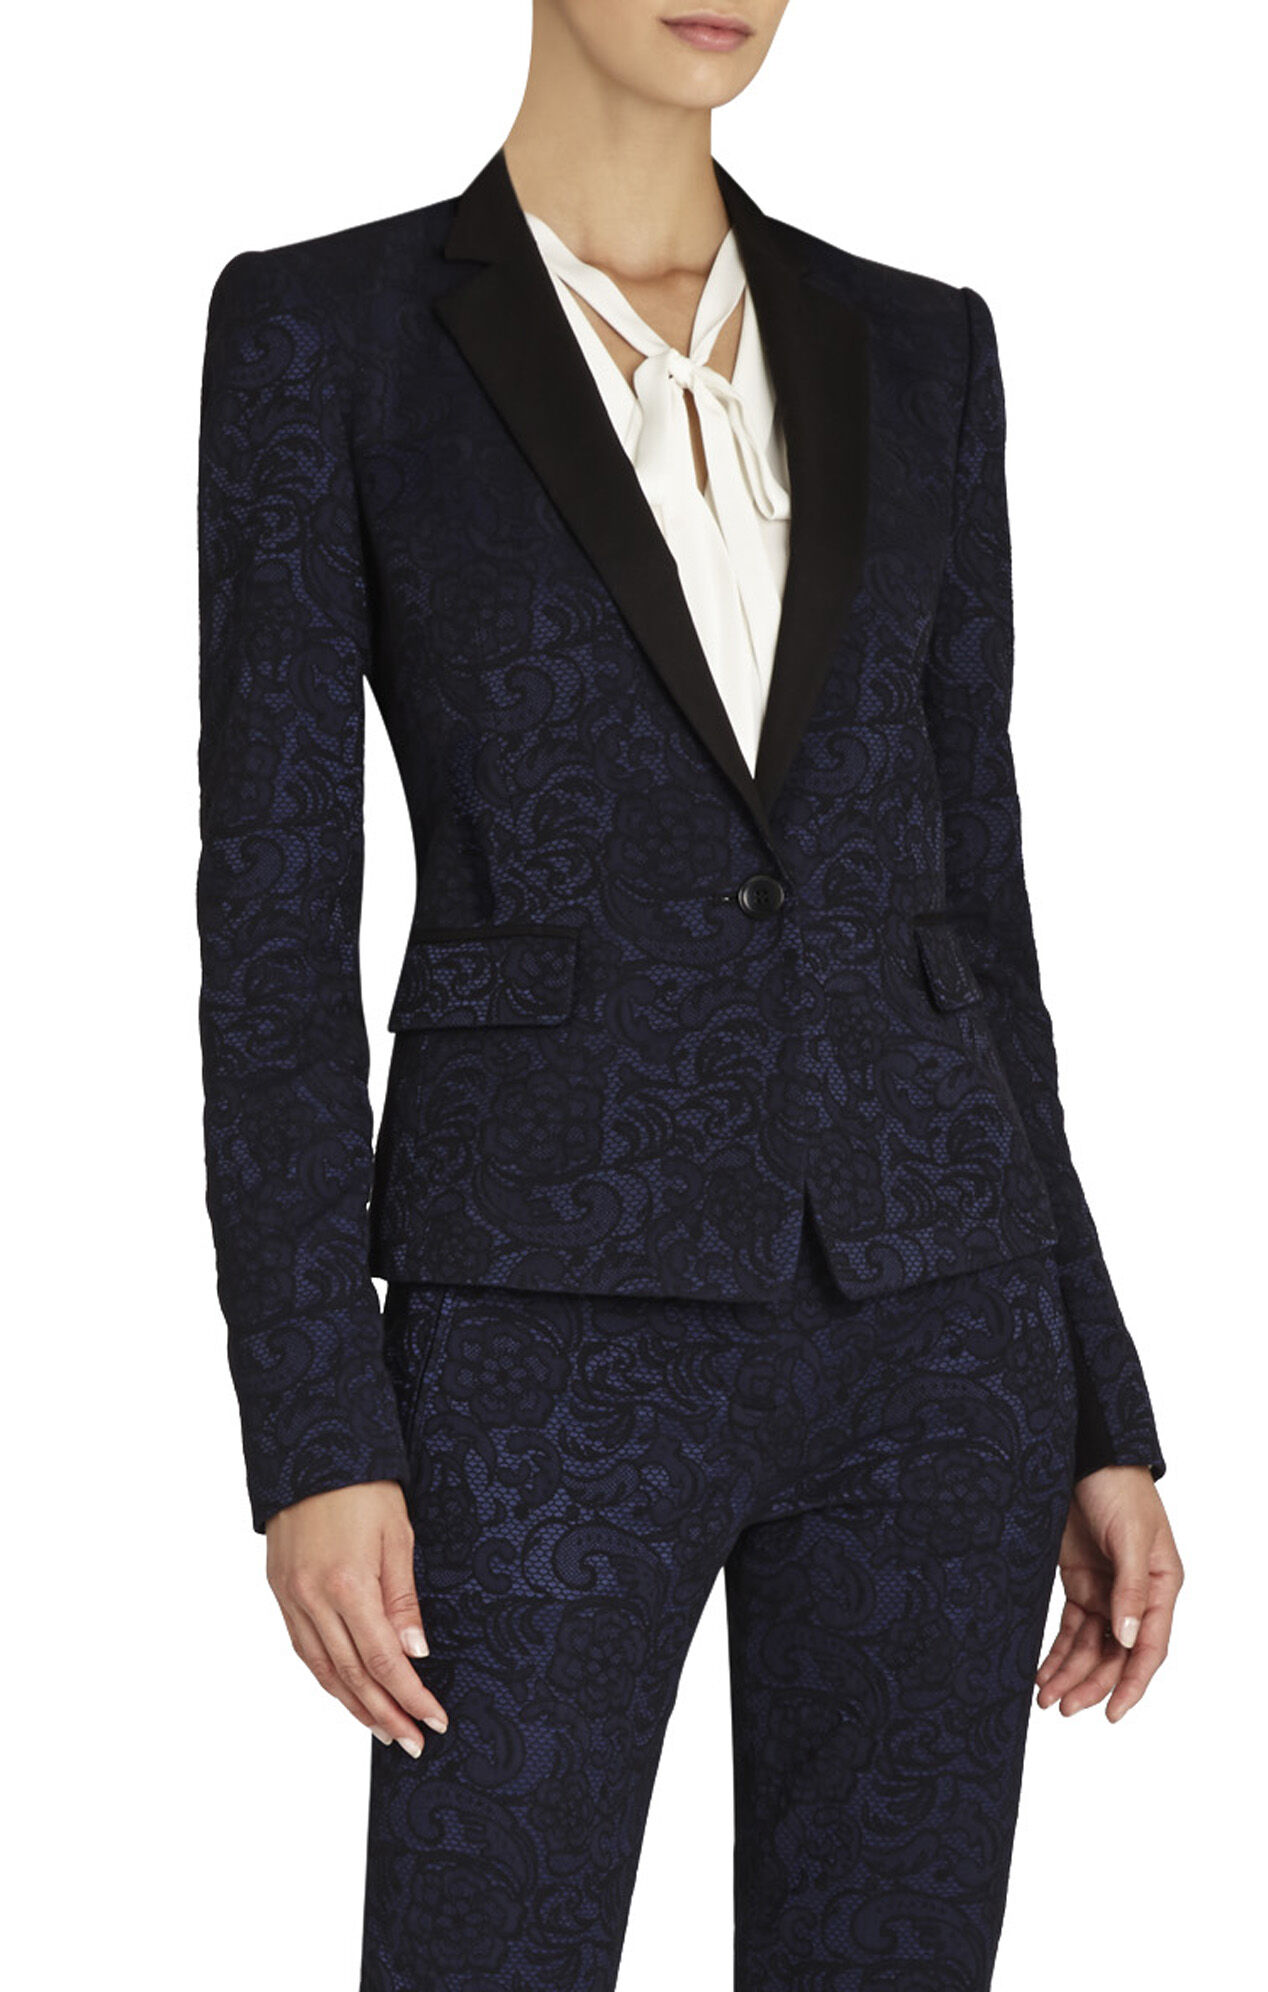 Philipe Floral Lace Jacket